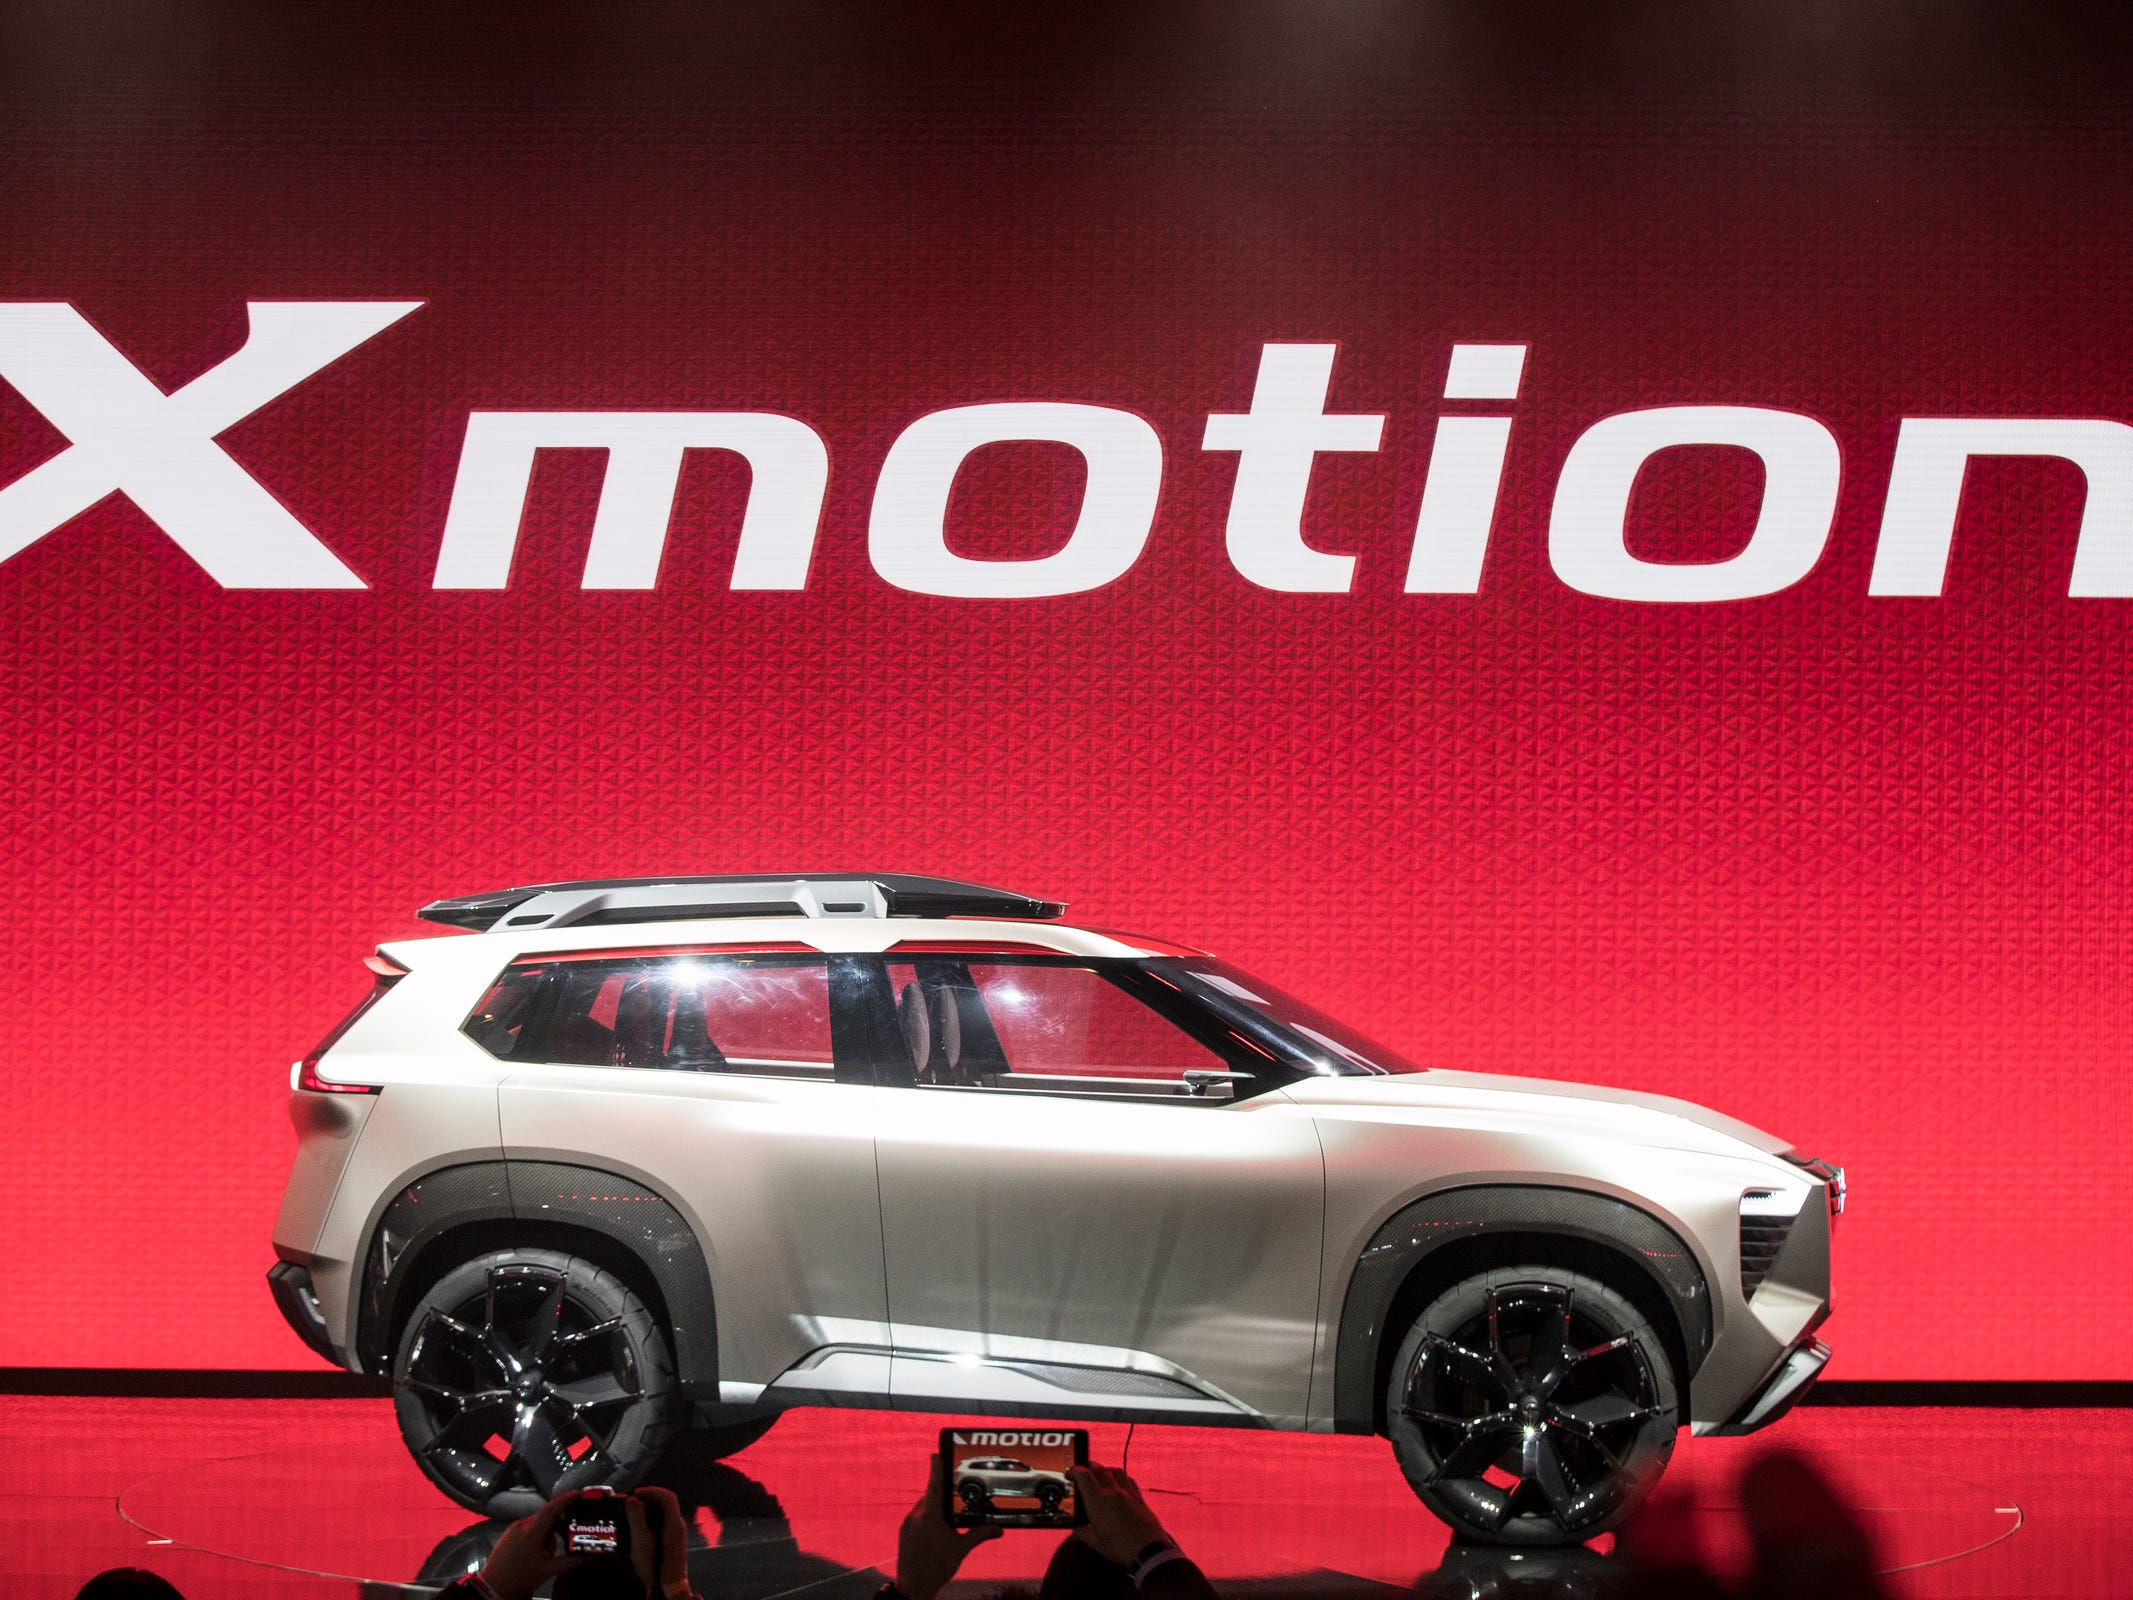 Nissan unveils the Nissan Xmotion concept SUV during the 2018 North American International Auto Show held at Cobo Center in downtown Detroit on Monday, Jan. 15, 2018.